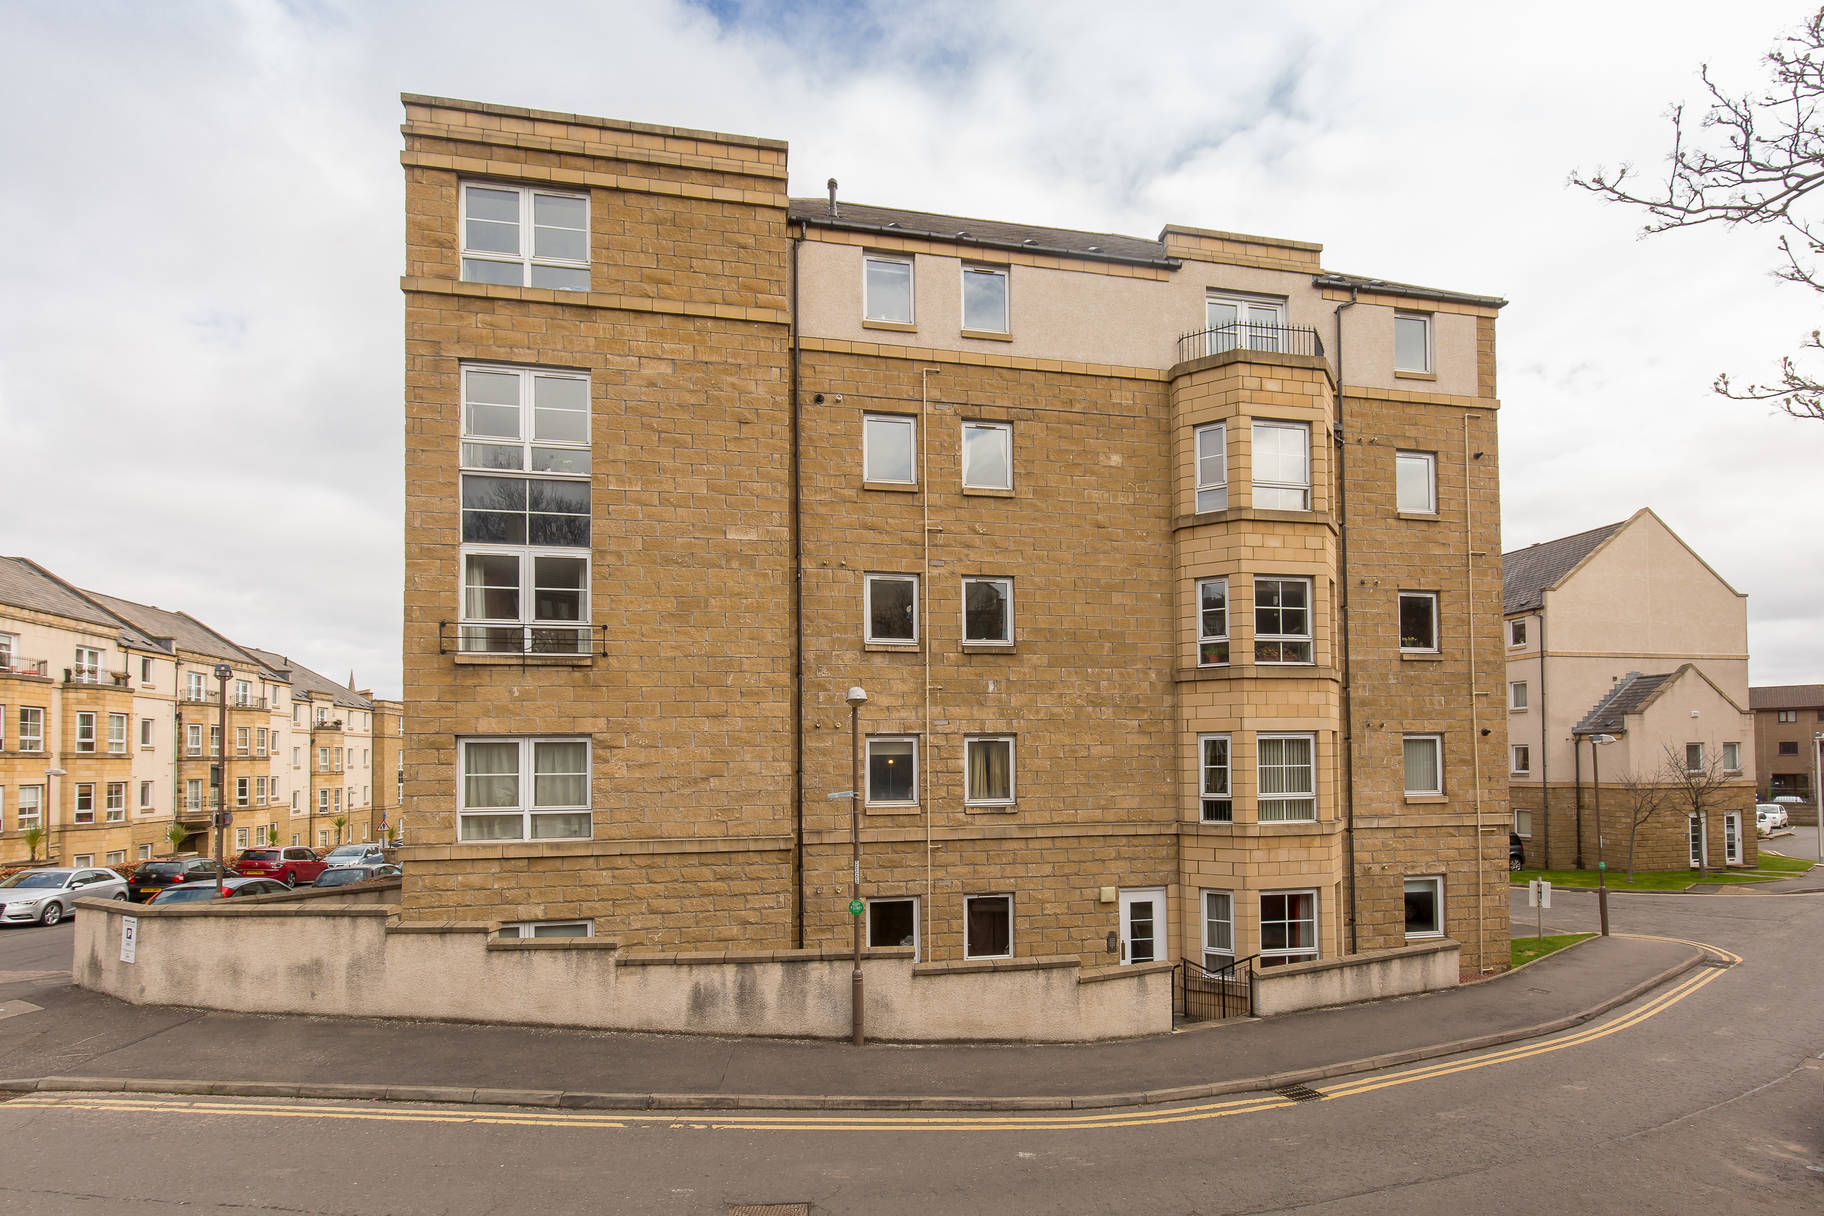 13/5 Dicksonfield, Leith, Edinburgh, EH7 5NE